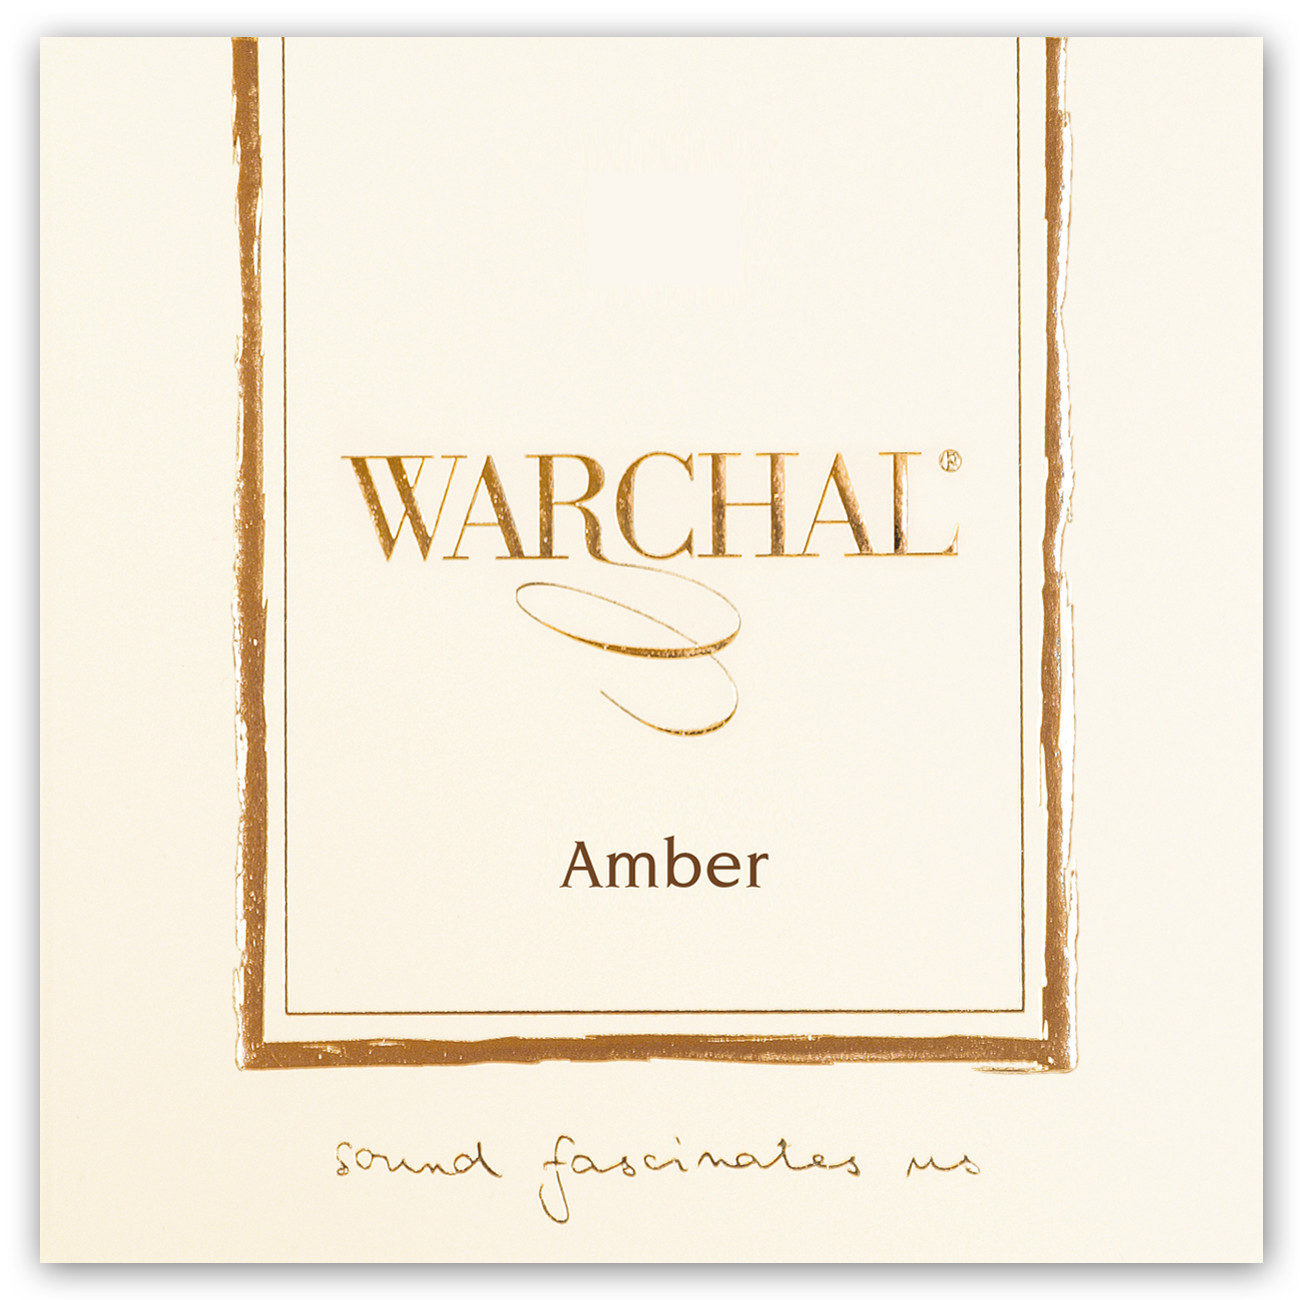 Warchal Amber Cello C